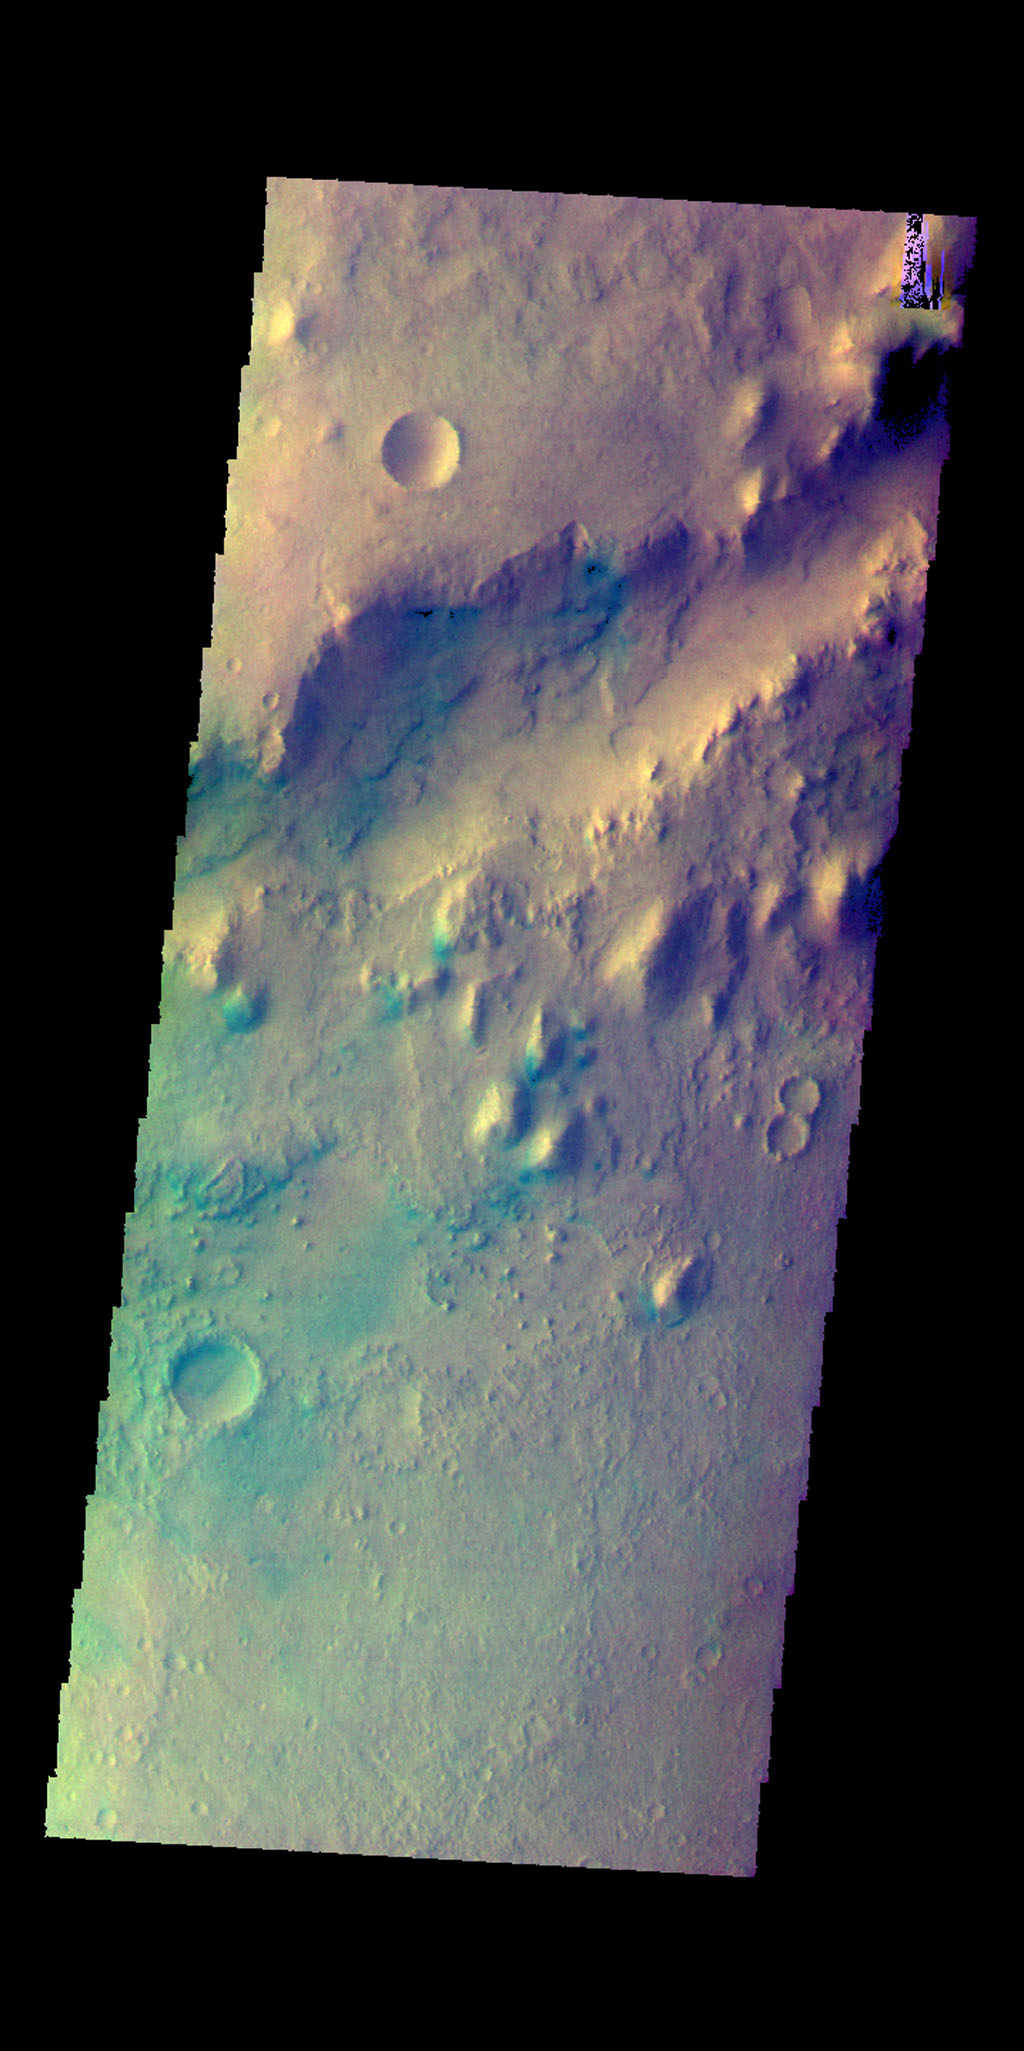 This image from NASA's Mars Odyssey shows a small section of Nili Fossae. The darker blue tones are usually indications of basaltic sands.